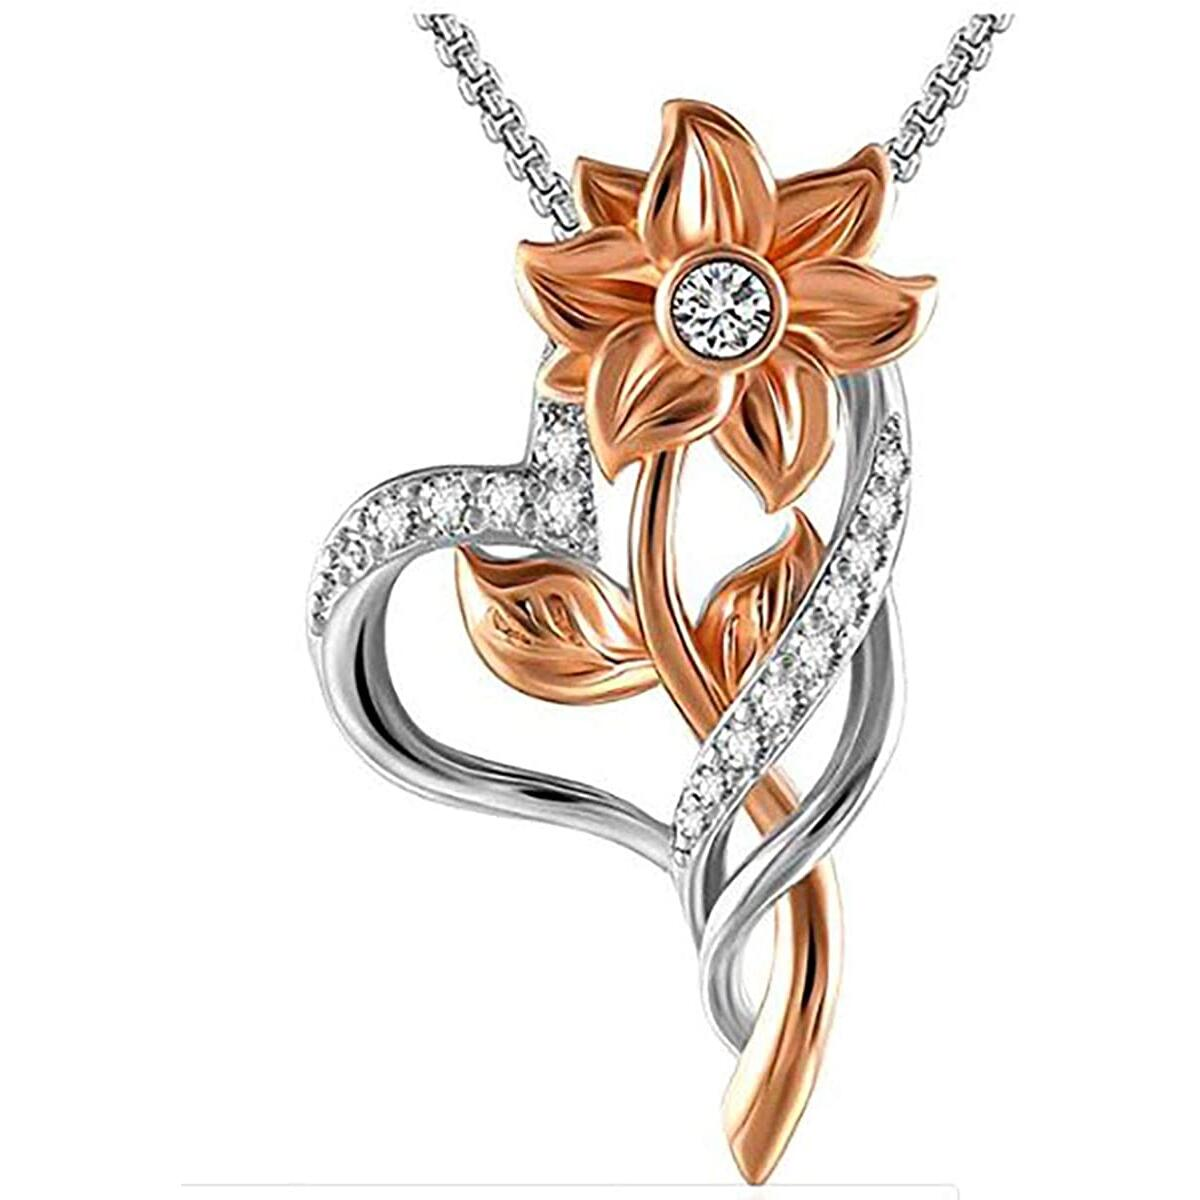 Quality Scape Women's Gorgeous Sunflower Pendant Necklace With Gift Box